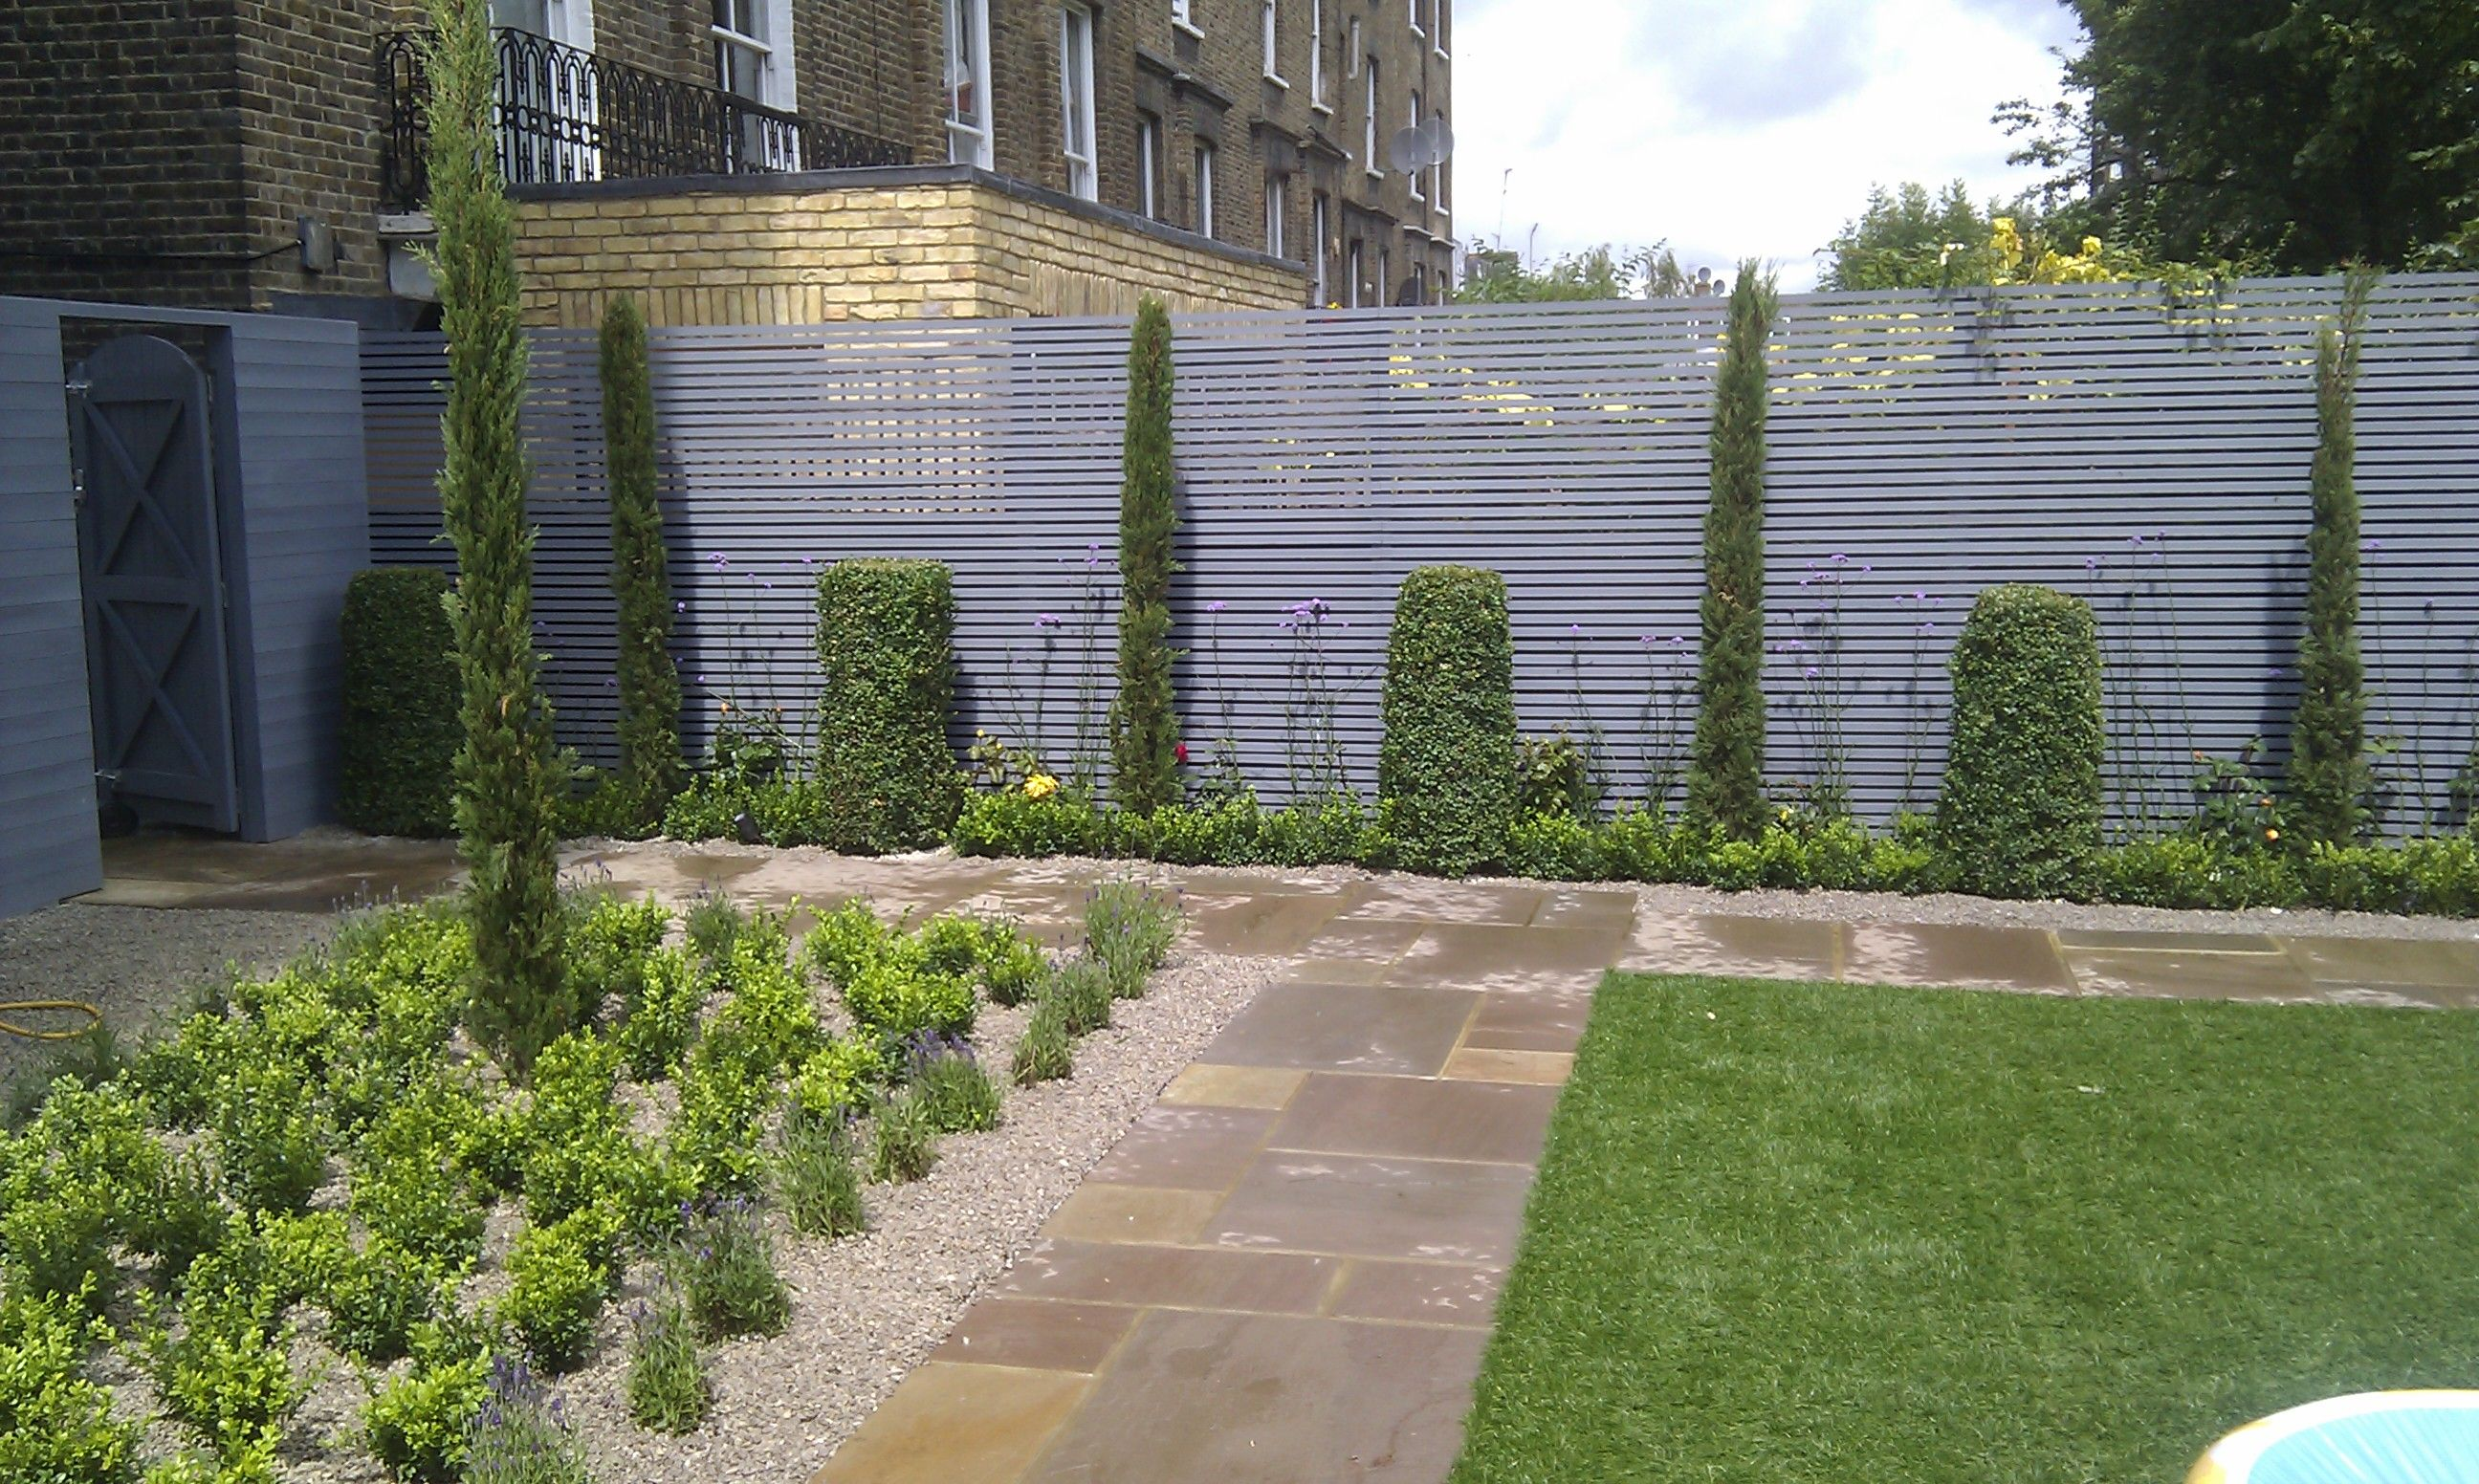 Low maintenance courtyard garden design designer planting privacy screen hardwood painted grey - Garden ideas london ...